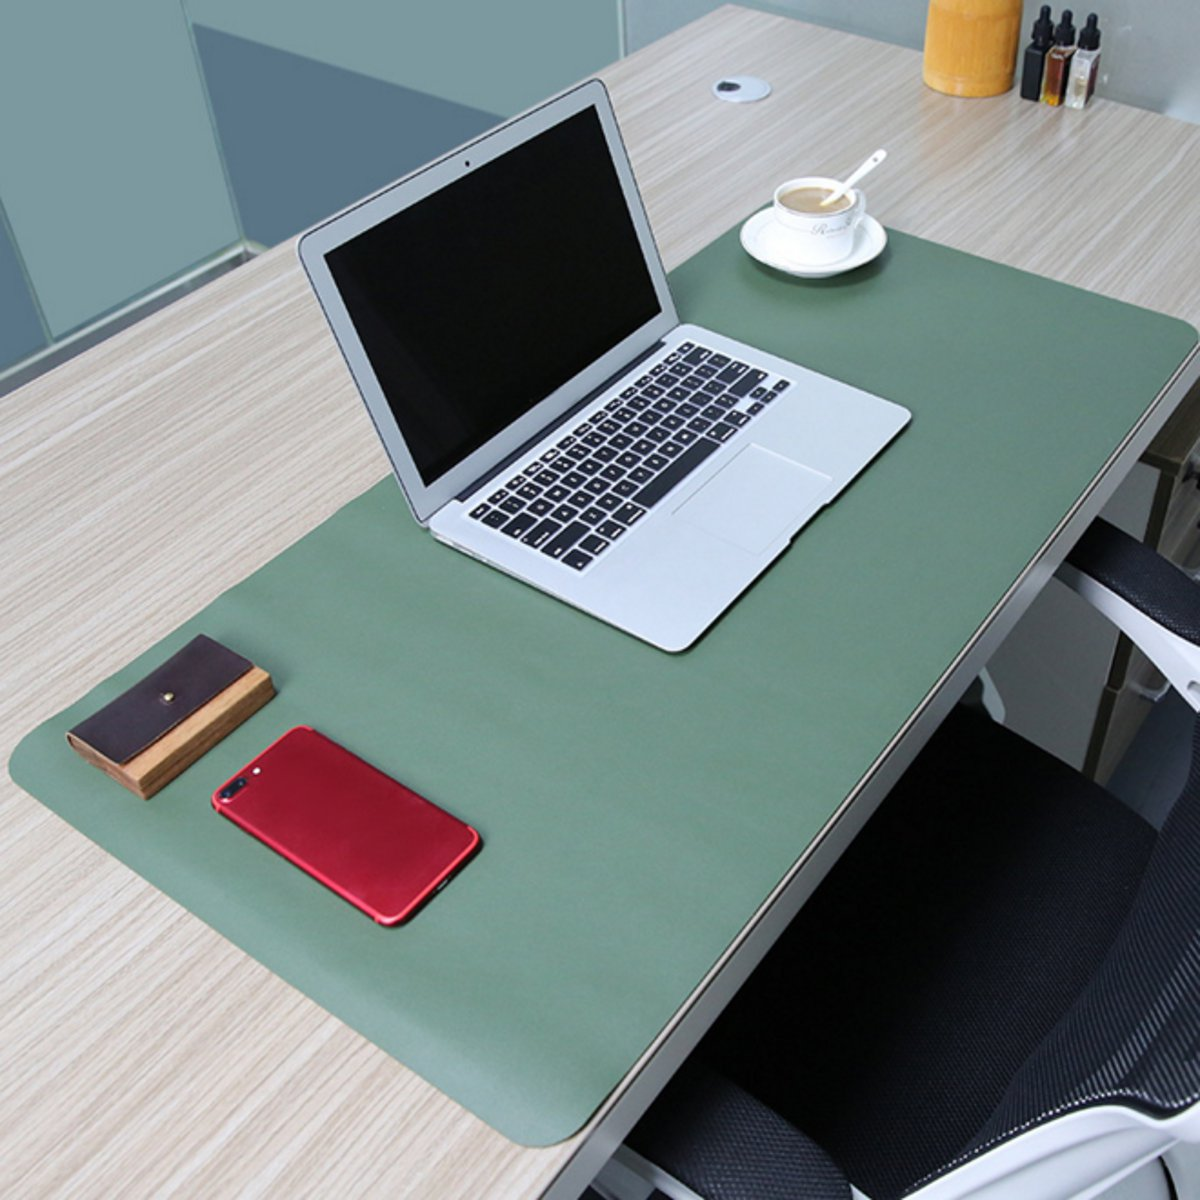 80x40cm Both Sides Two Colors Extended Pu Leather Mouse Pad Mat Large Office Gaming Desk